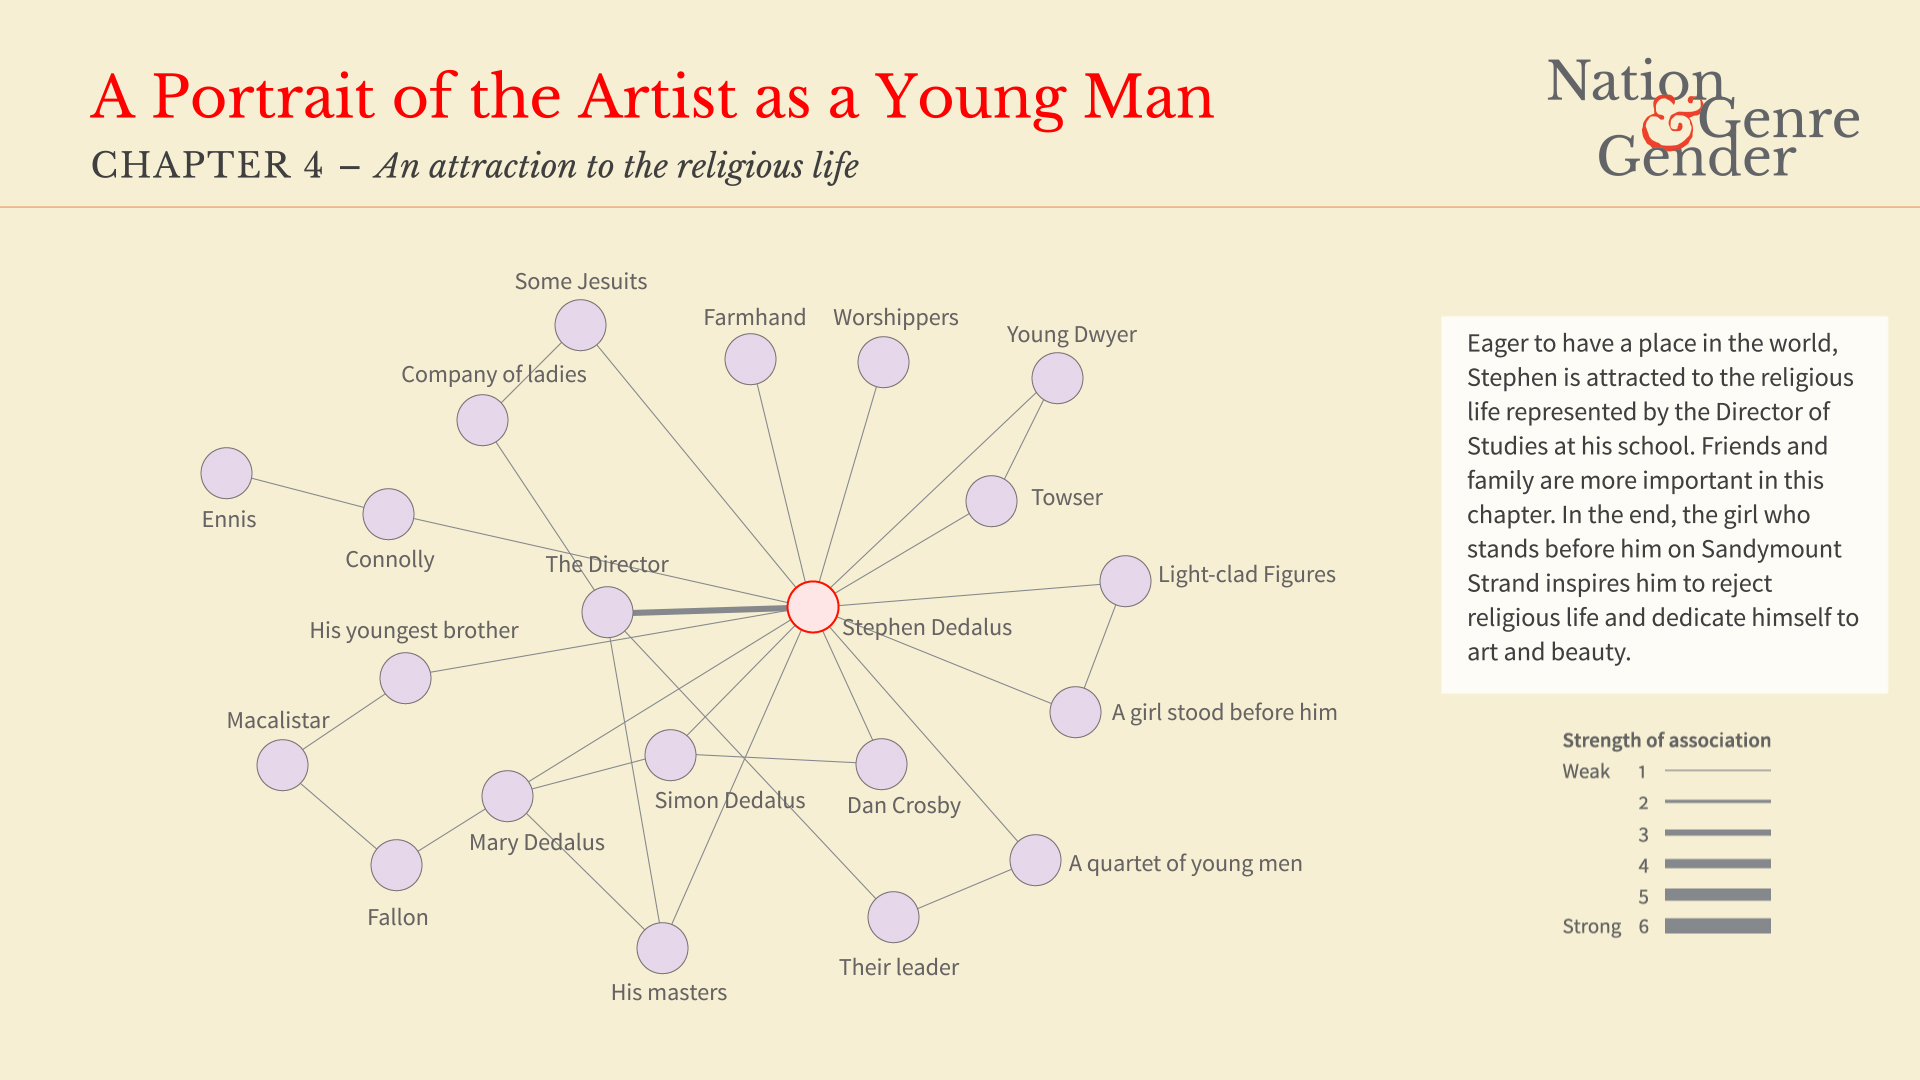 an analysis of a portrait of the artist as a young man by james joyce Two aspects of romanticism figure into this analysis of a portrait of the artist as a   james joyce's a portrait of the artist as a young man presents an account of.